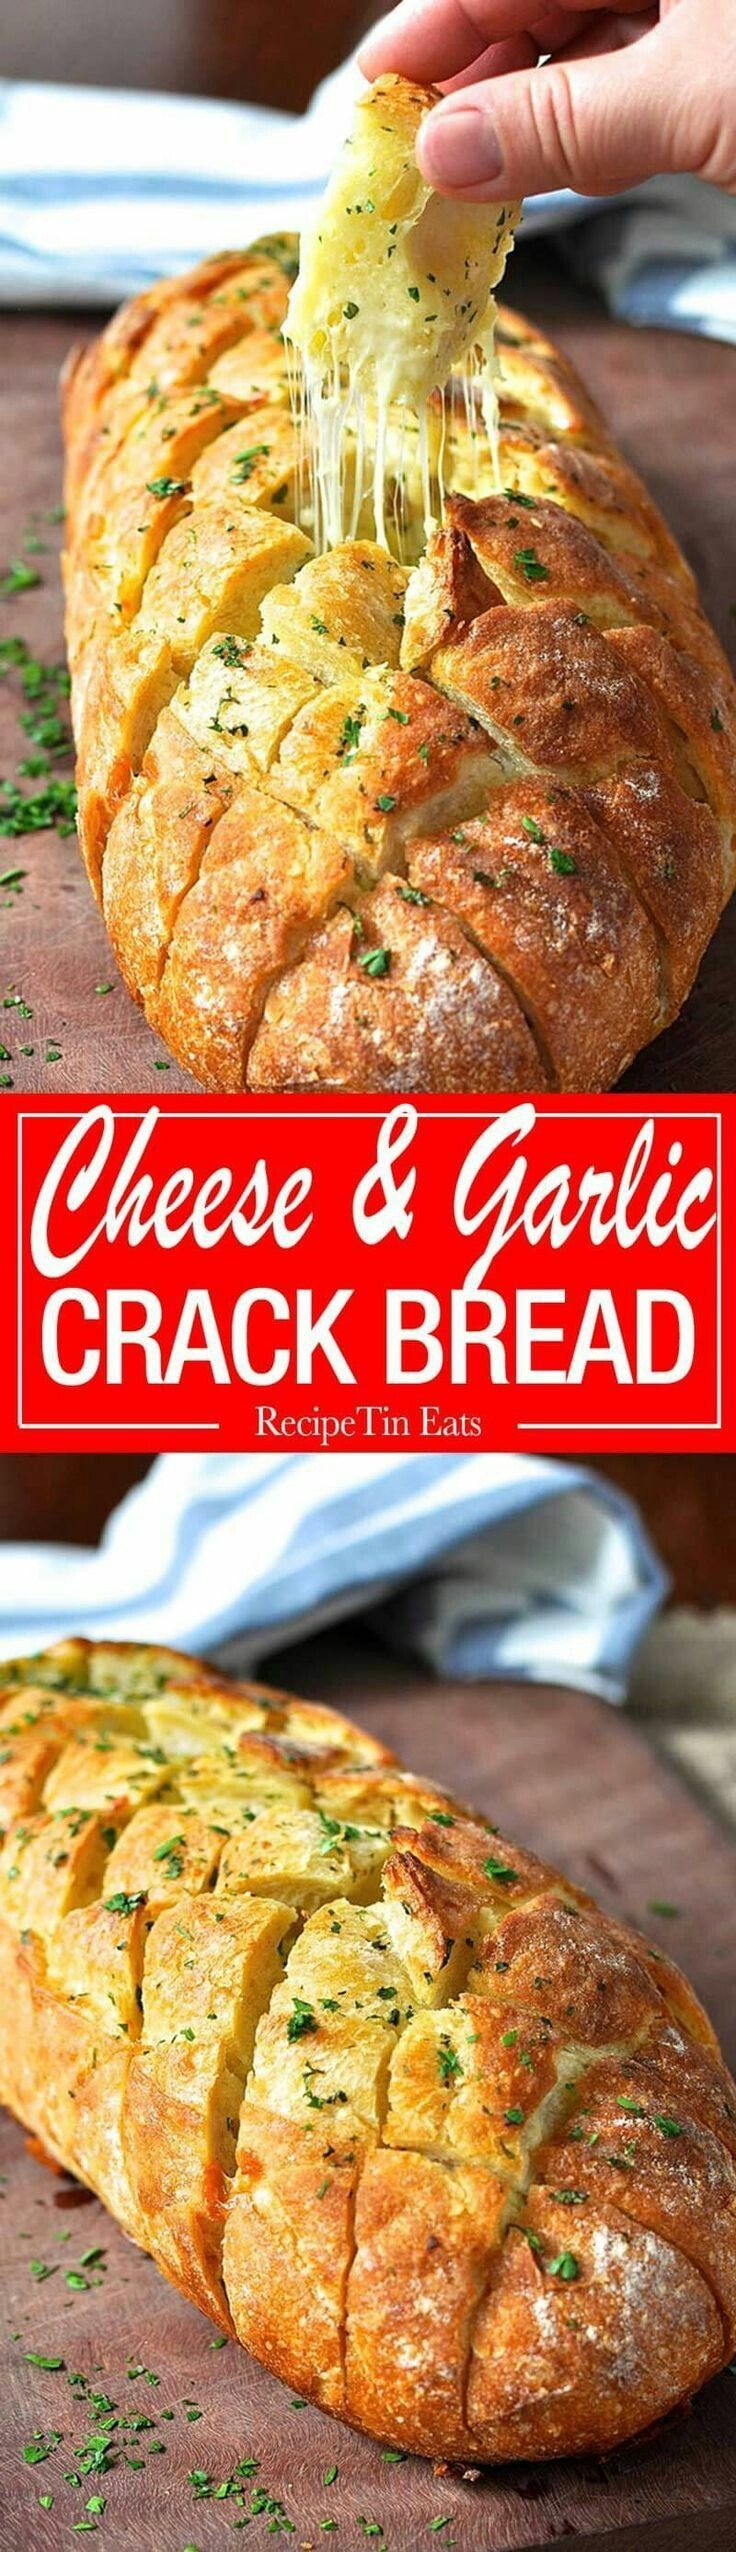 CHEESE AND GARLIC CRACK BREAD RECIPE  (PULL APART BREAD),DIY,How-to,homemade,how,how to fix,how to repair,0% APR,credit card with 0% Apr,0% interest,Credit card 0% interest,Mesothelioma Law Firm,Donate Car to Charity California,Donate Car for Tax Credit,D